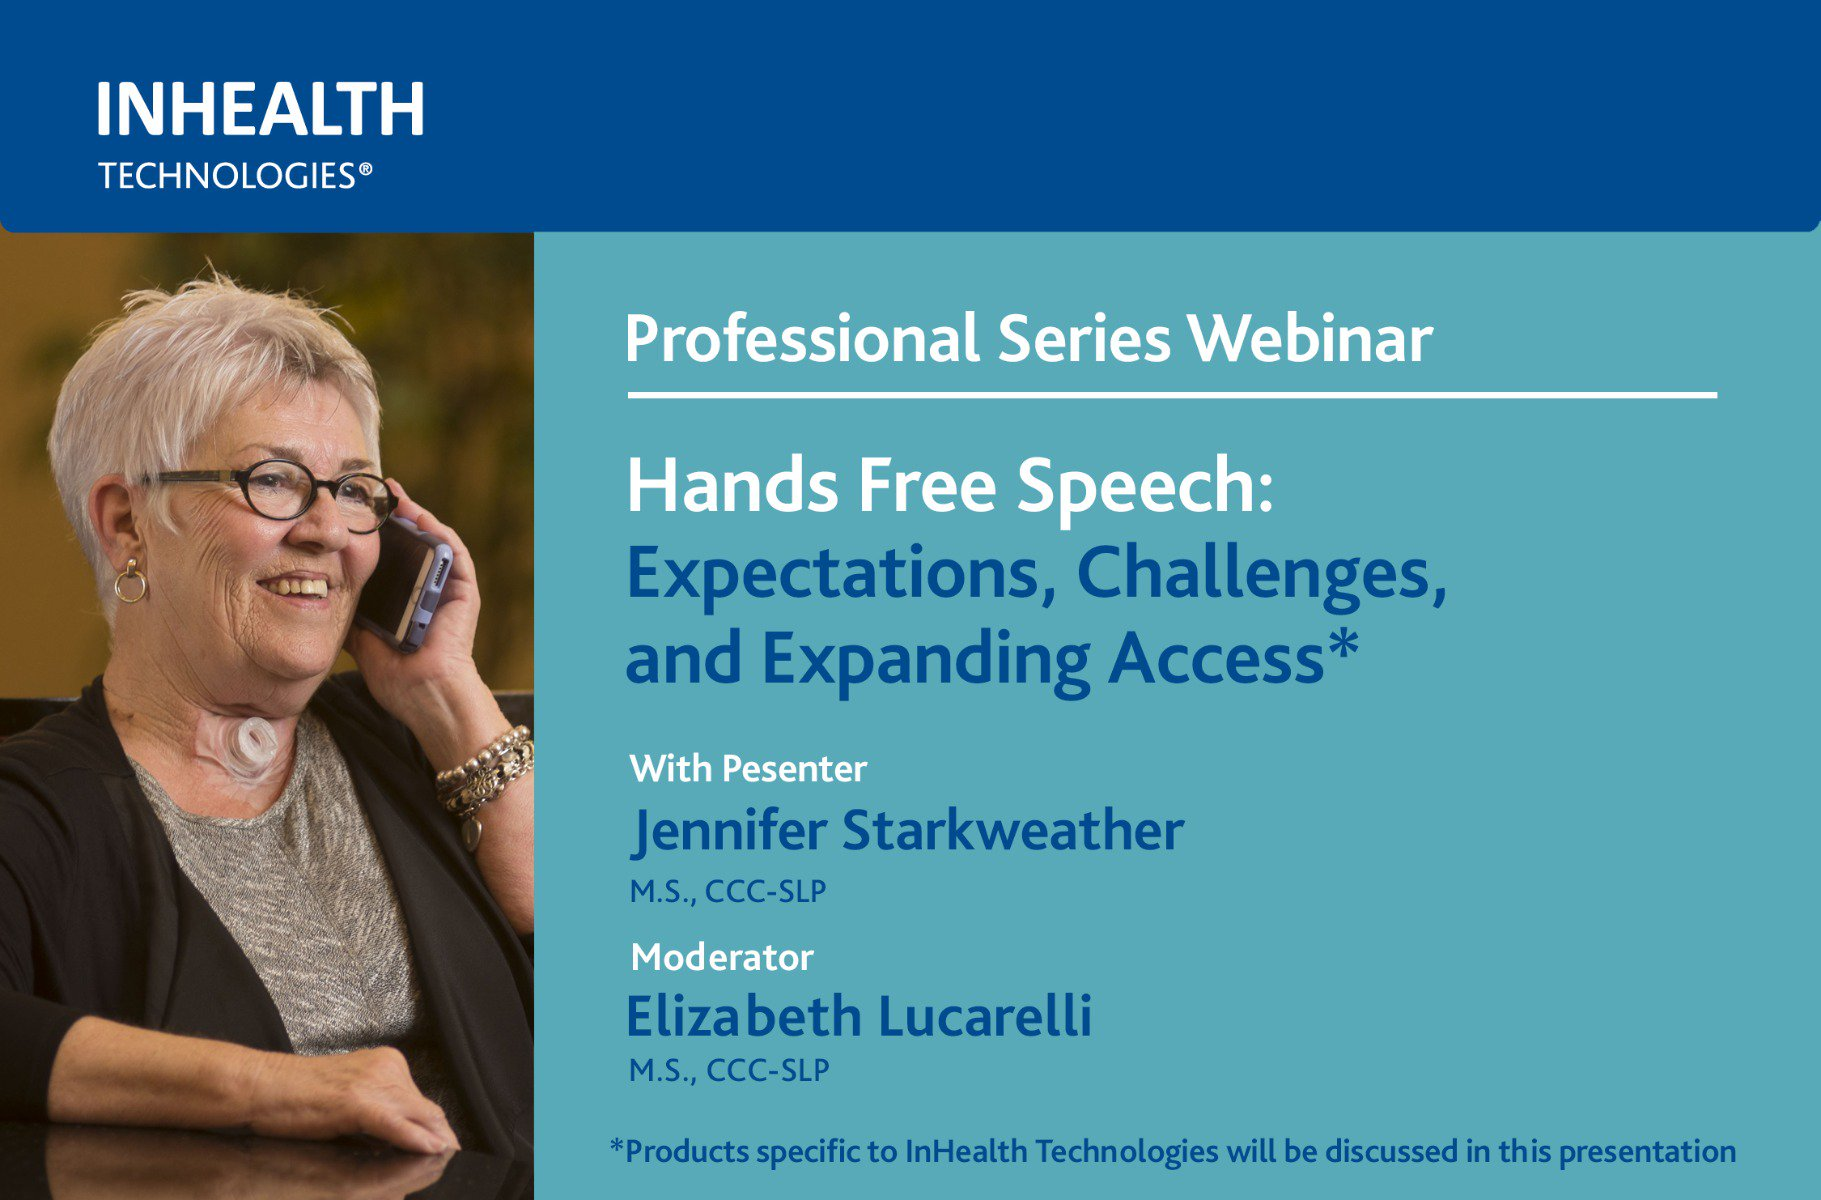 Hands Free Speech: Expectations, Challenges, and Expanding Access